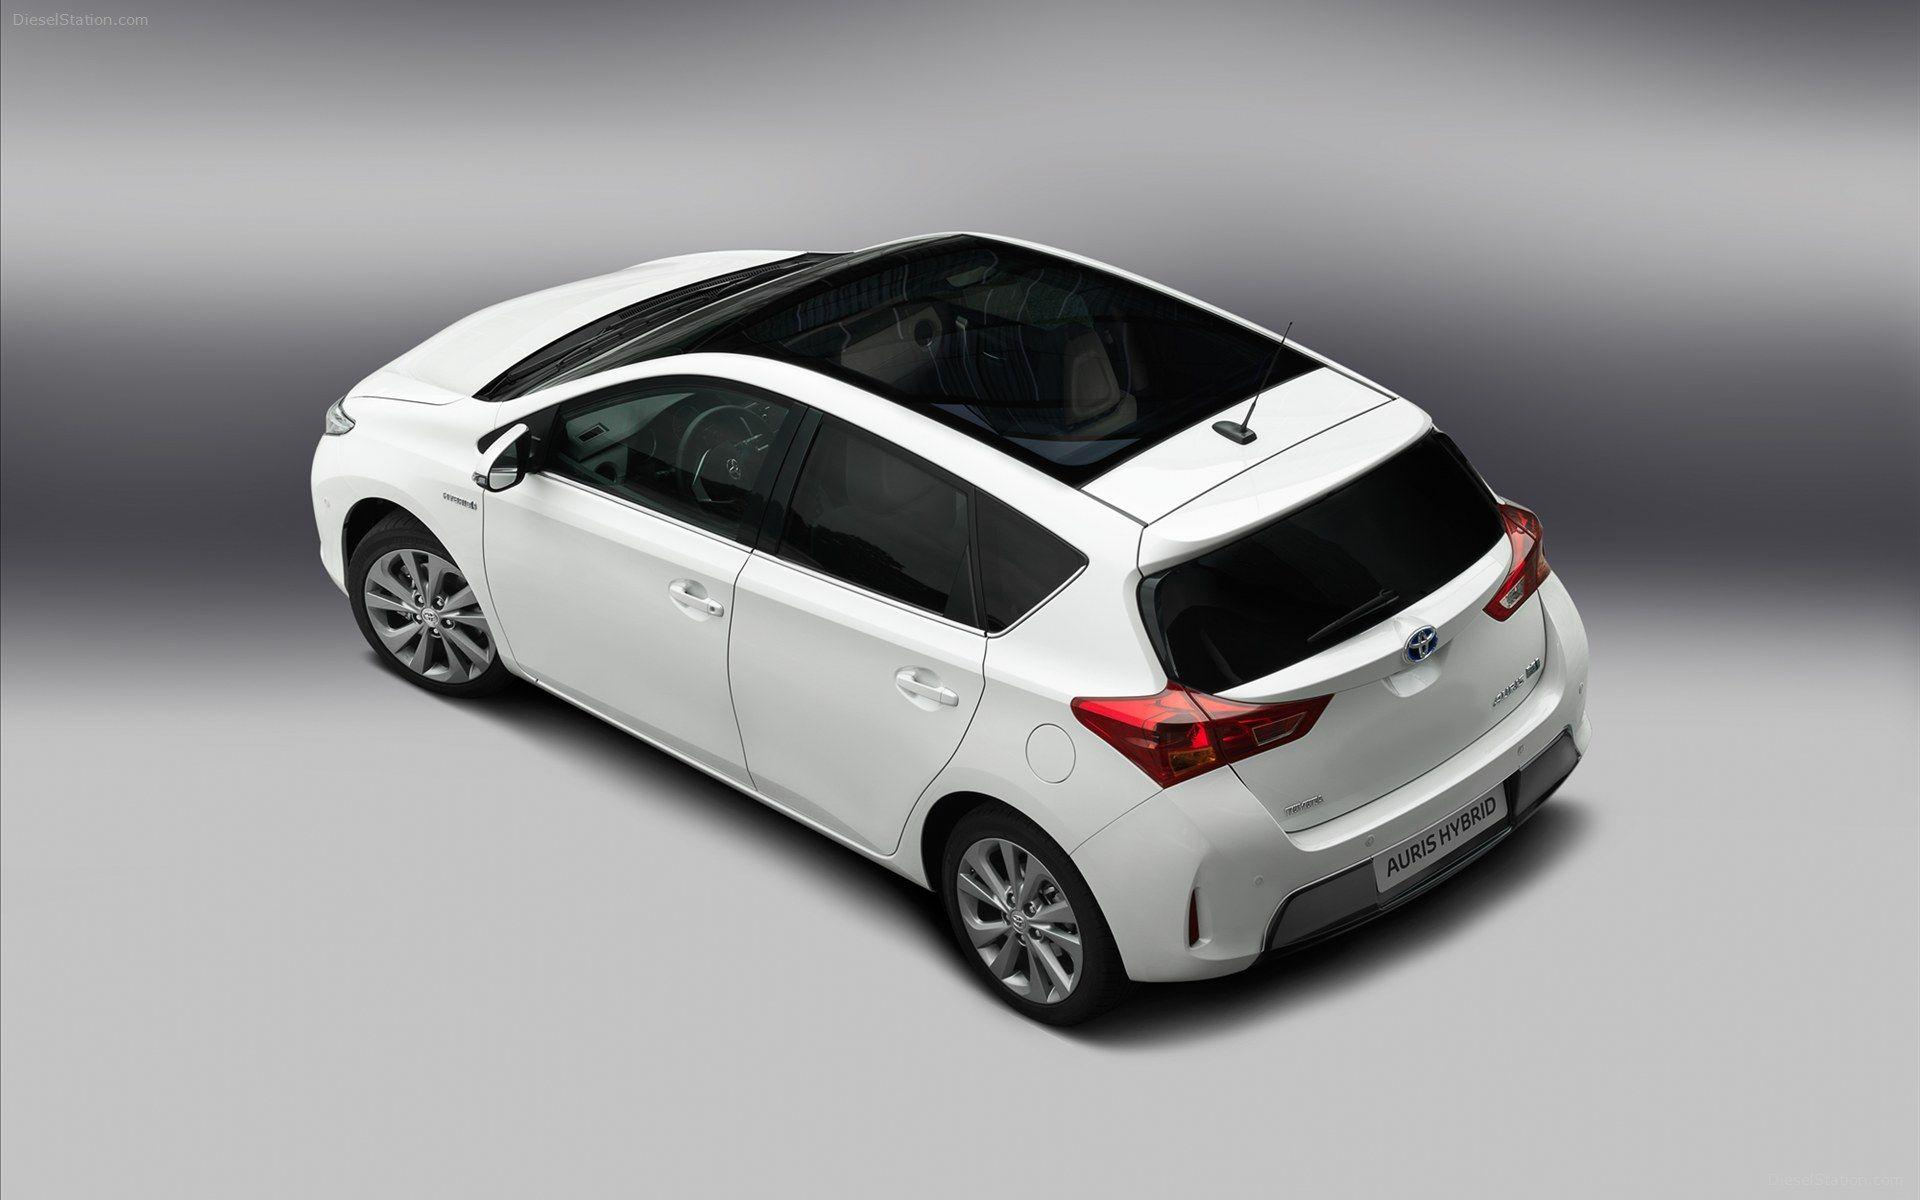 Toyota Auris Hybrid 2013 Widescreen Exotic Car Wallpapers of 24